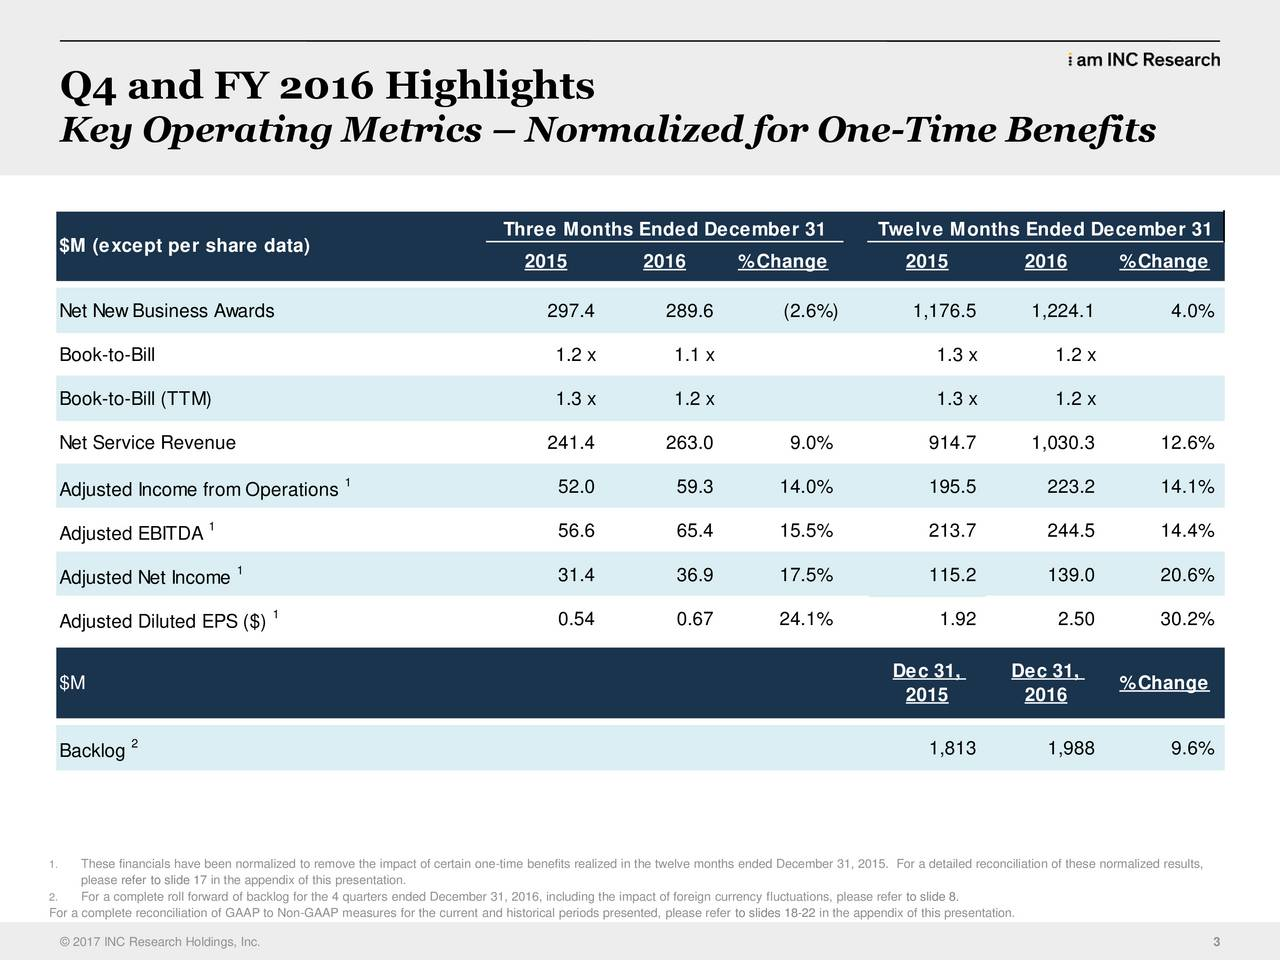 Key Operating Metrics  Normalized for One-Time Benefits Three Months Ended December 31 Twelve Months Ended December 31 $M (except per share data) 2015 2016 %Change 2015 2016 %Change Net New Business Awards 297.4 289.6 (2.6%) 1,176.5 1,224.1 4.0% Book-to-Bill 1.2 x 1.1 x 1.3 x 1.2 x Book-to-Bill (TTM) 1.3 x 1.2 x 1.3 x 1.2 x Net Service Revenue 241.4 263.0 9.0% 914.7 1,030.3 12.6% 1 Adjusted Income from Operations 52.0 59.3 14.0% 195.5 223.2 14.1% Adjusted EBITDA 1 56.6 65.4 15.5% 213.7 244.5 14.4% Adjusted Net Income 1 31.4 36.9 17.5% 115.2 139.0 20.6% 1 0.54 0.67 24.1% 1.92 2.50 30.2% Adjusted Diluted EPS ($) Dec 31, Dec 31, $M %Change 2015 2016 Backlog 2 1,813 1,988 9.6% 1. These financials have been normalized to remove the impact of certain one-time benefits realized in the twelve months ended December 31, 2015. For a detailed reconciliation of these normalized results, please refer to slide 17 in the appendix of this presentation. For a complete reconciliation of GAAP to Non-GAAP measures for the current and historical periods presented, please refer to slides 18-22 in the appendix of this presentation. 2017 INC Research Holdings, Inc. 3